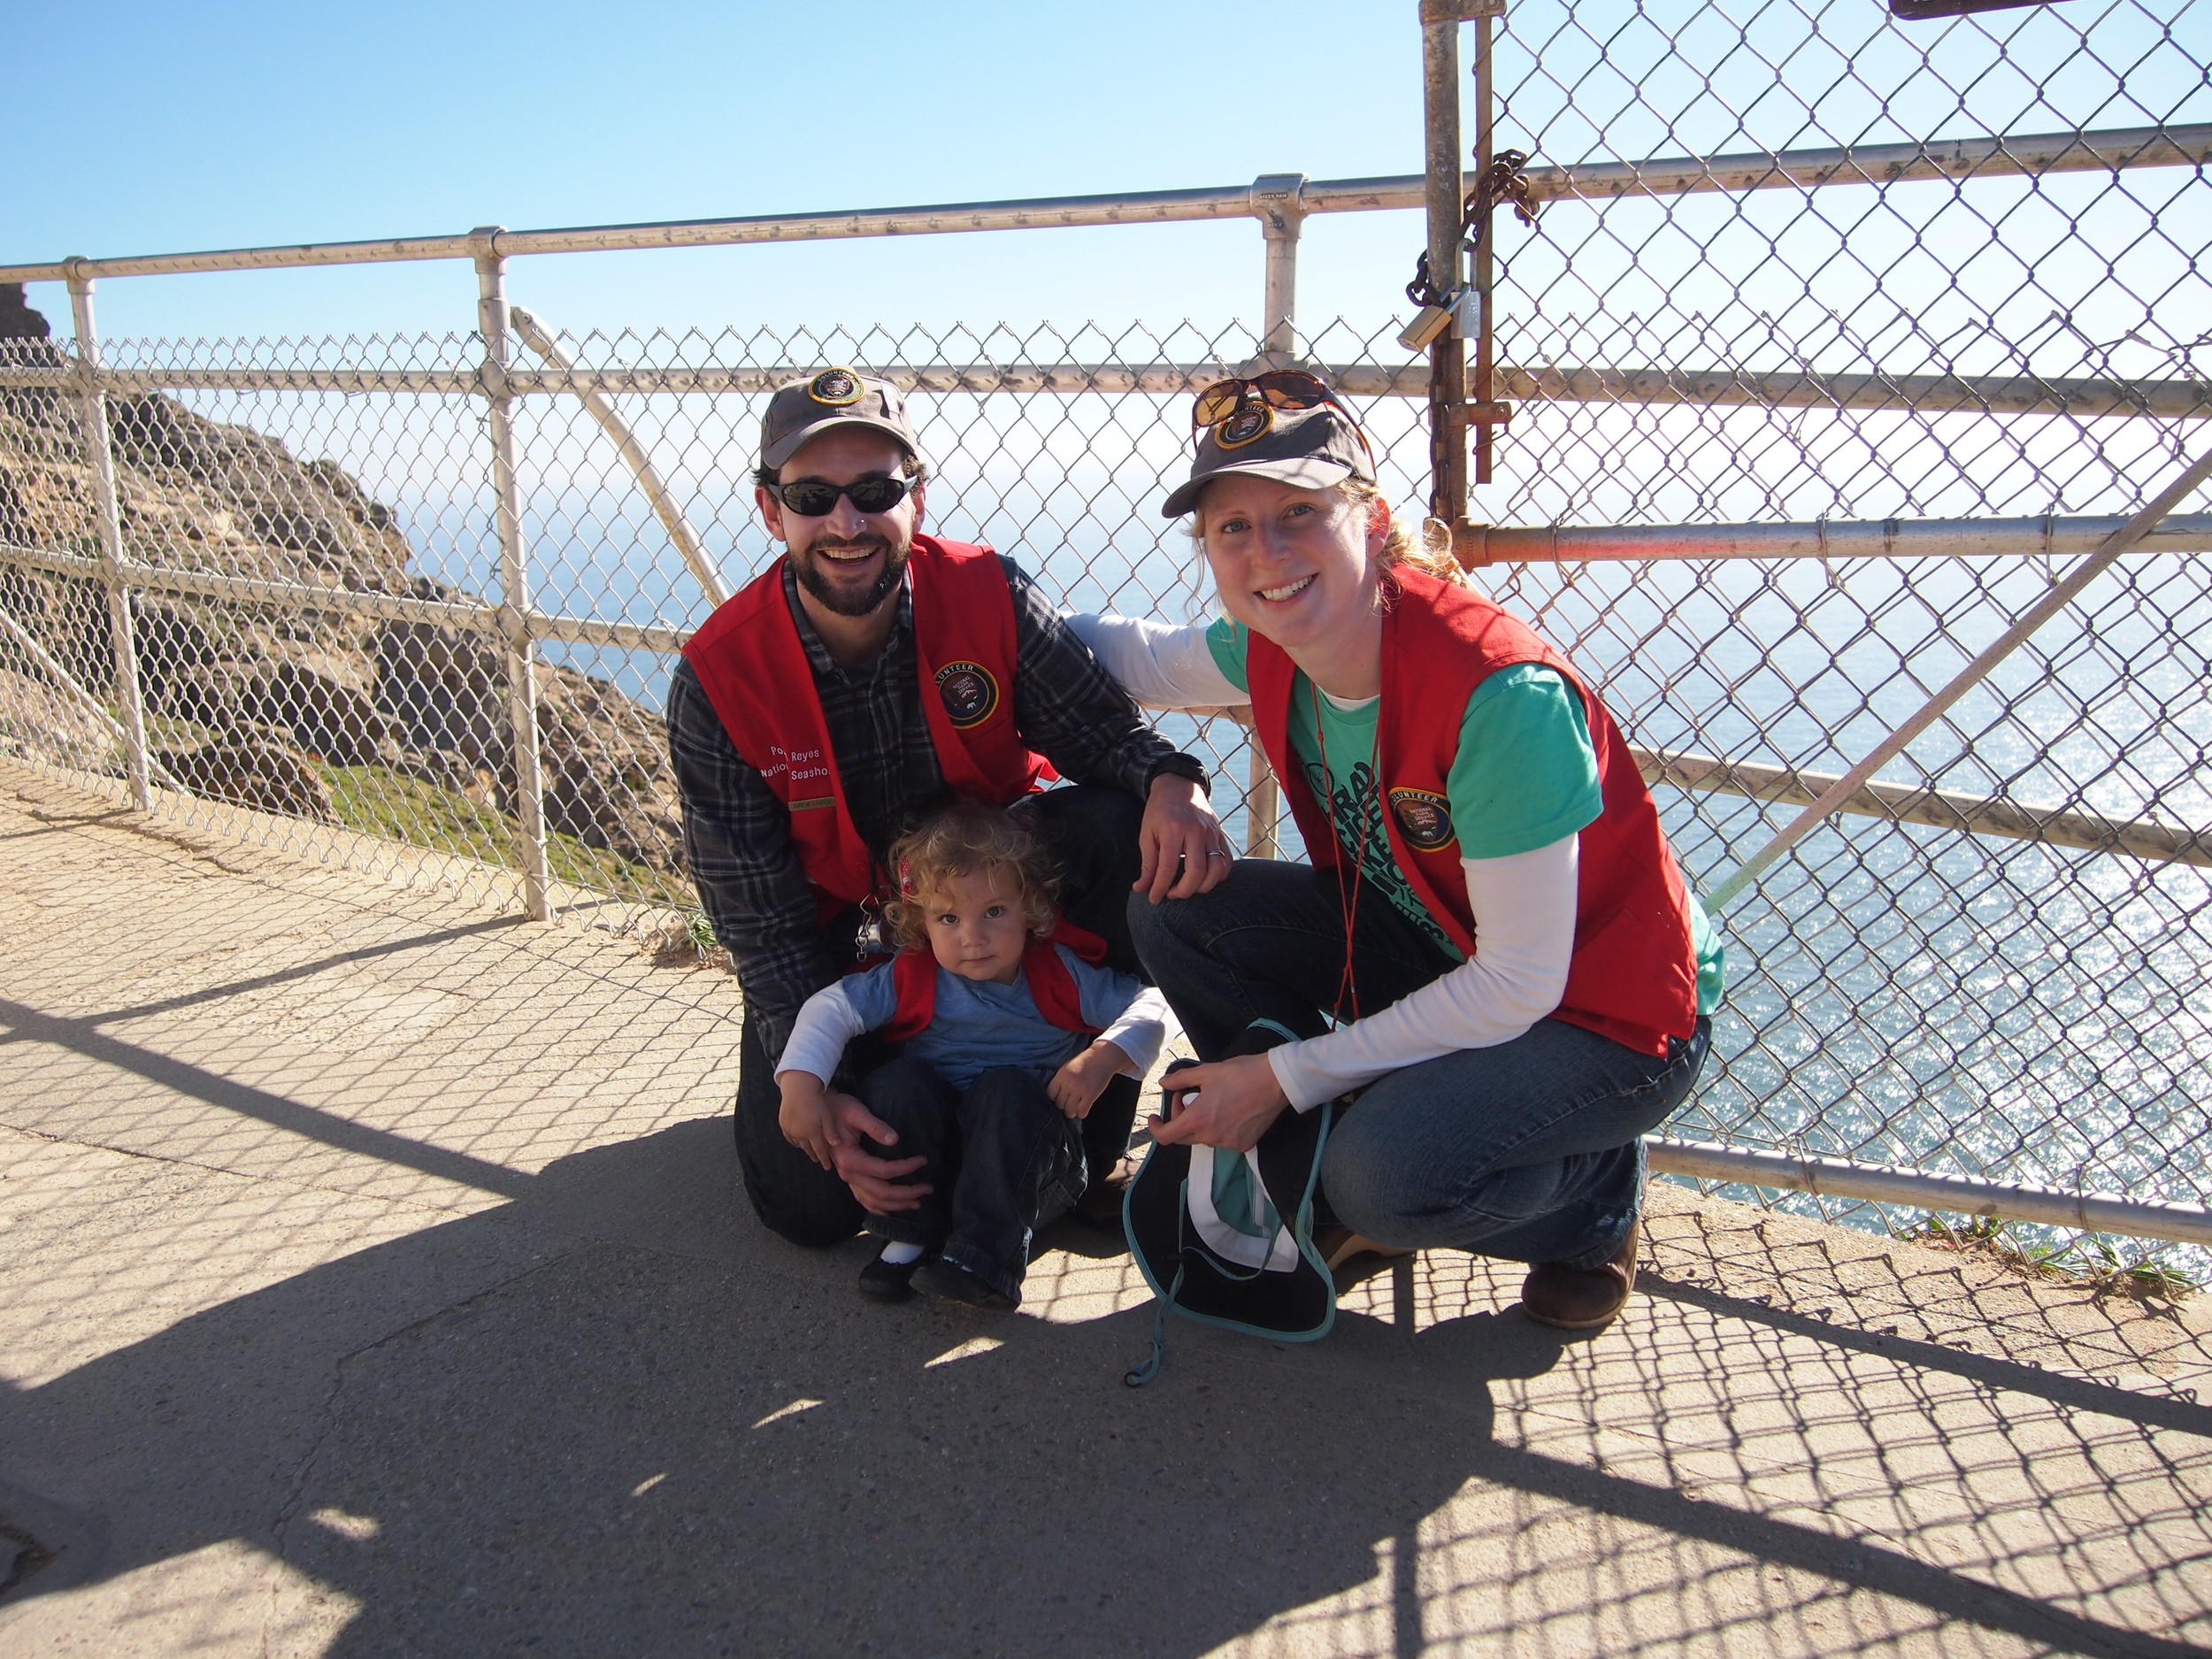 Marta and her family at the Point Reyes Lighthouse Overlook, a great location for spotting migrating gray whales. Marta is also a volunteer in Point Reyes National Seashore.